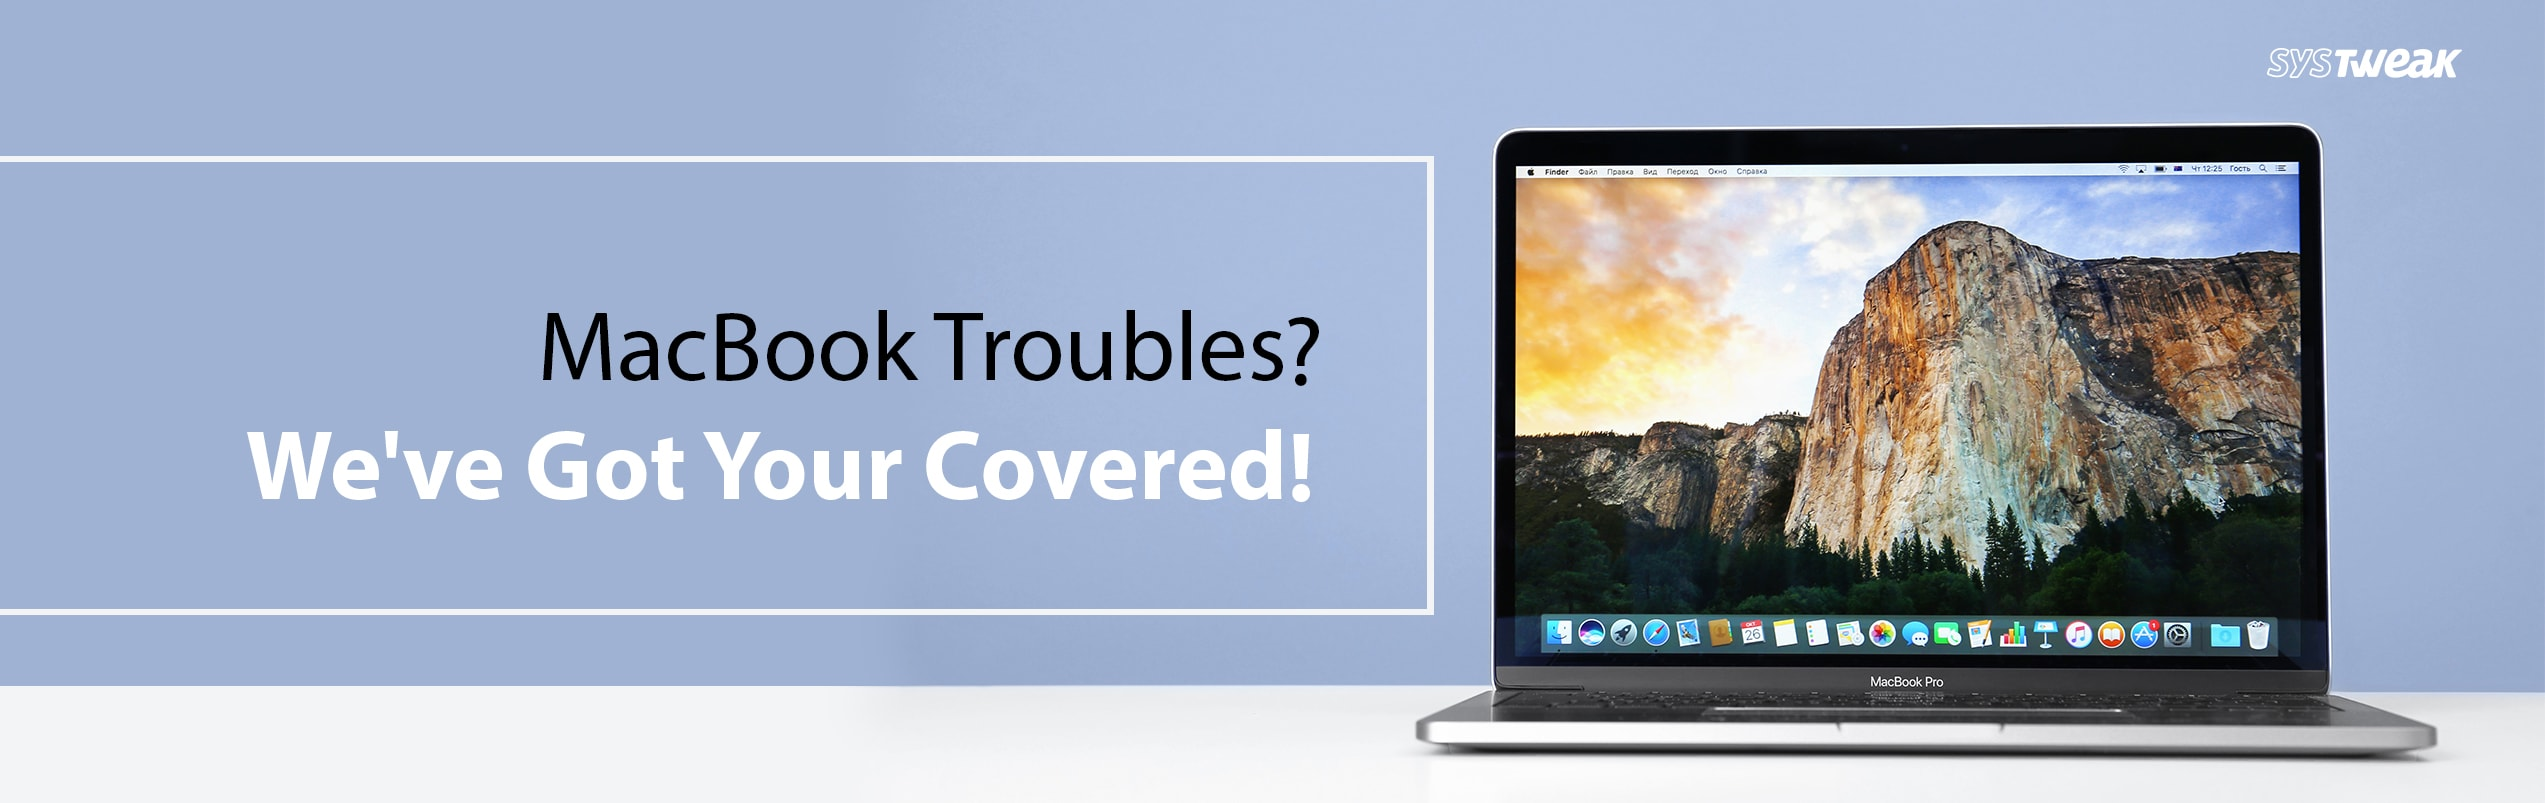 5 Most Common Macbook Annoyances Along with Their Fixes